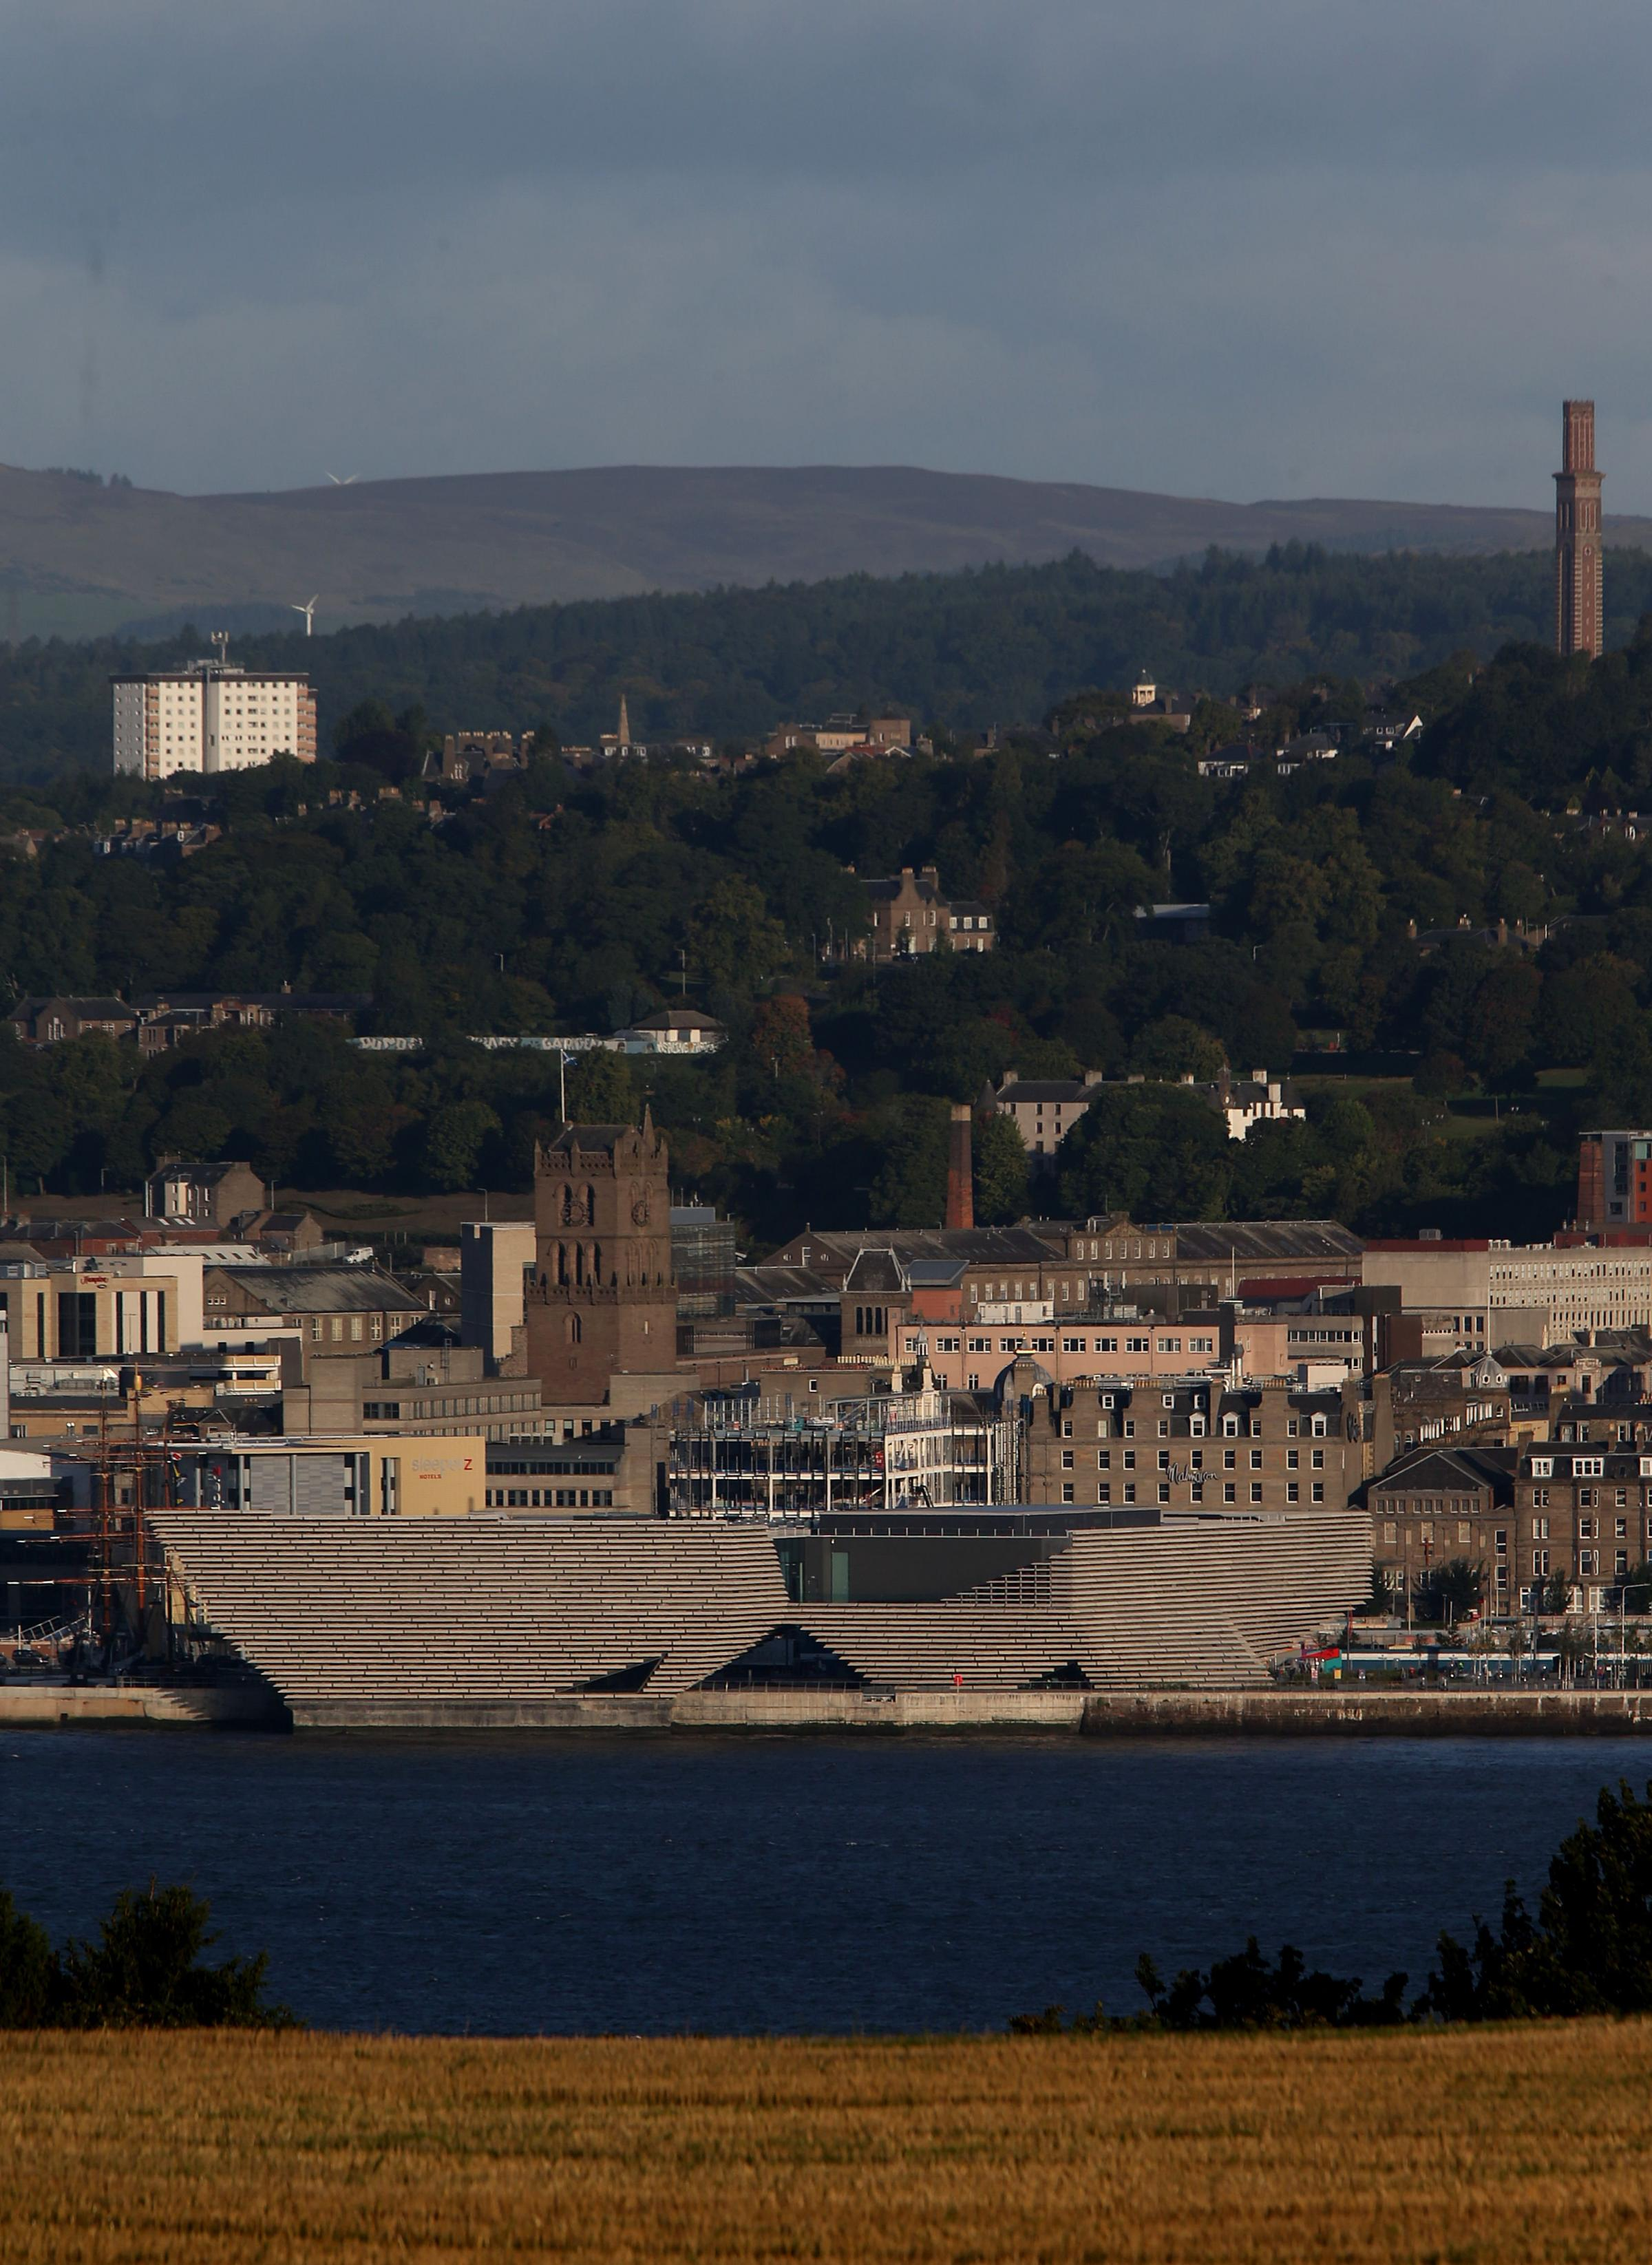 Dundee has been hit with major job losses in recent weeks